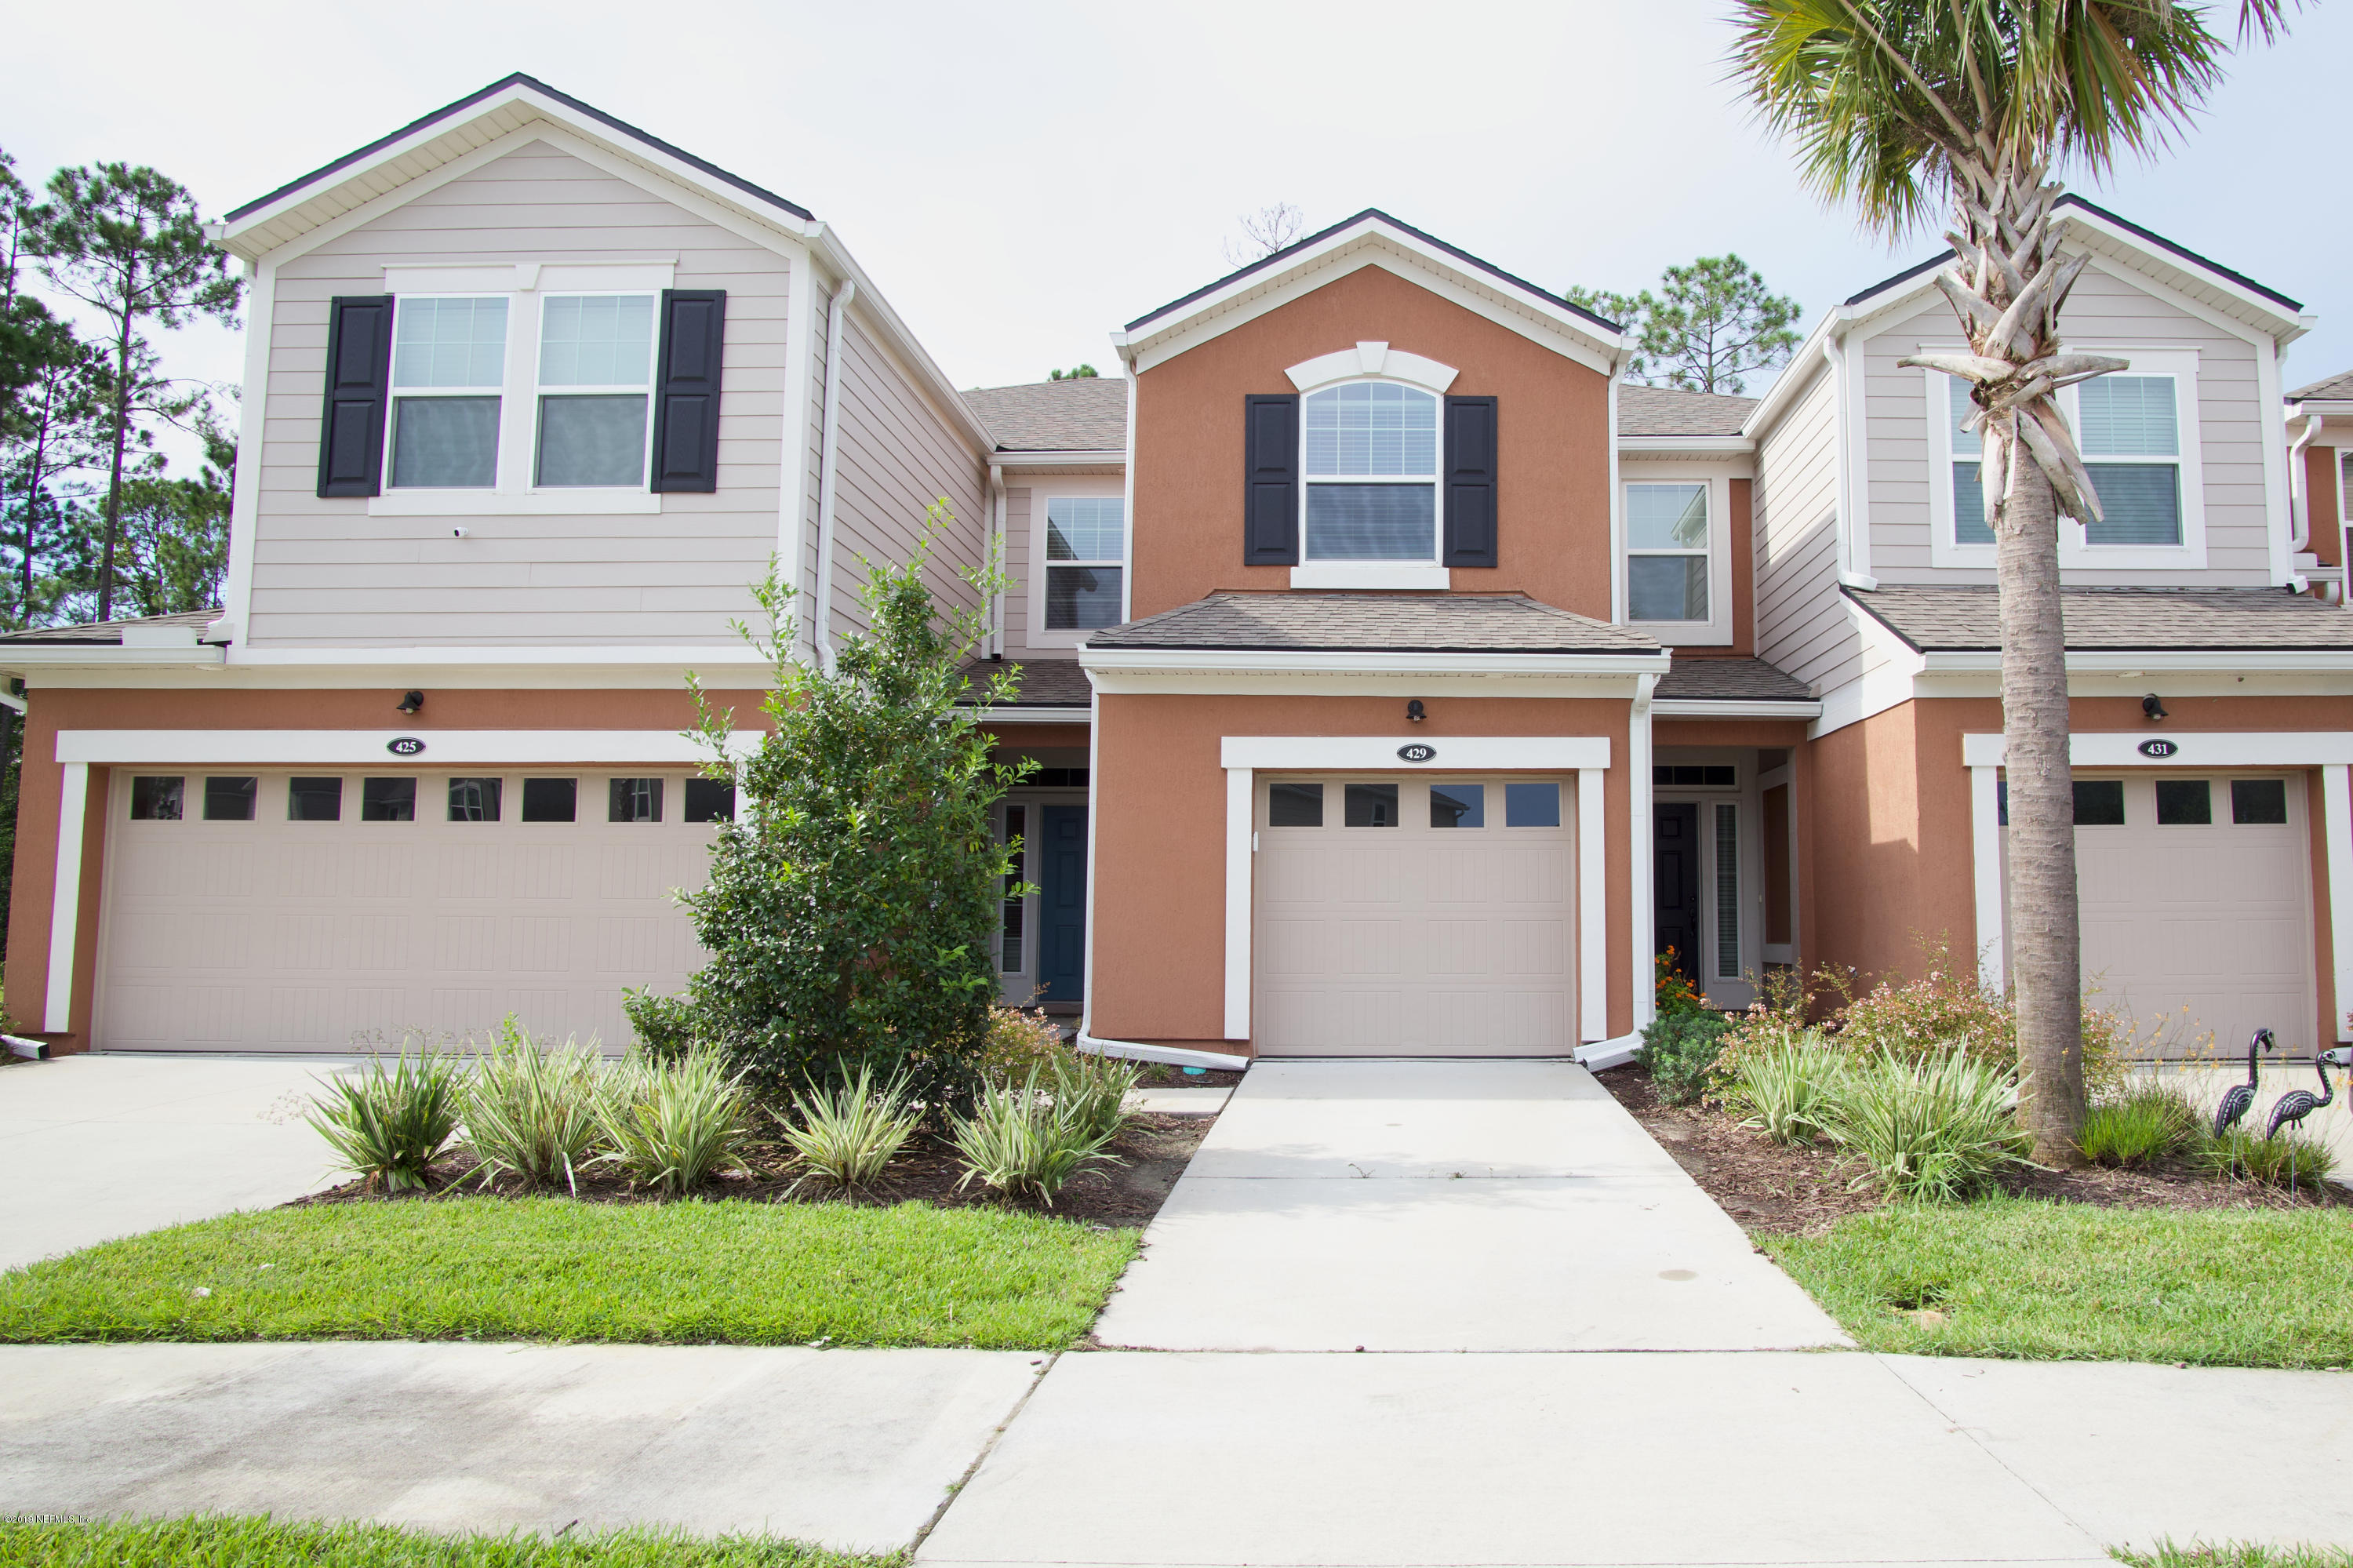 429 RICHMOND, ST JOHNS, FLORIDA 32259, 3 Bedrooms Bedrooms, ,2 BathroomsBathrooms,Residential - townhome,For sale,RICHMOND,1010339